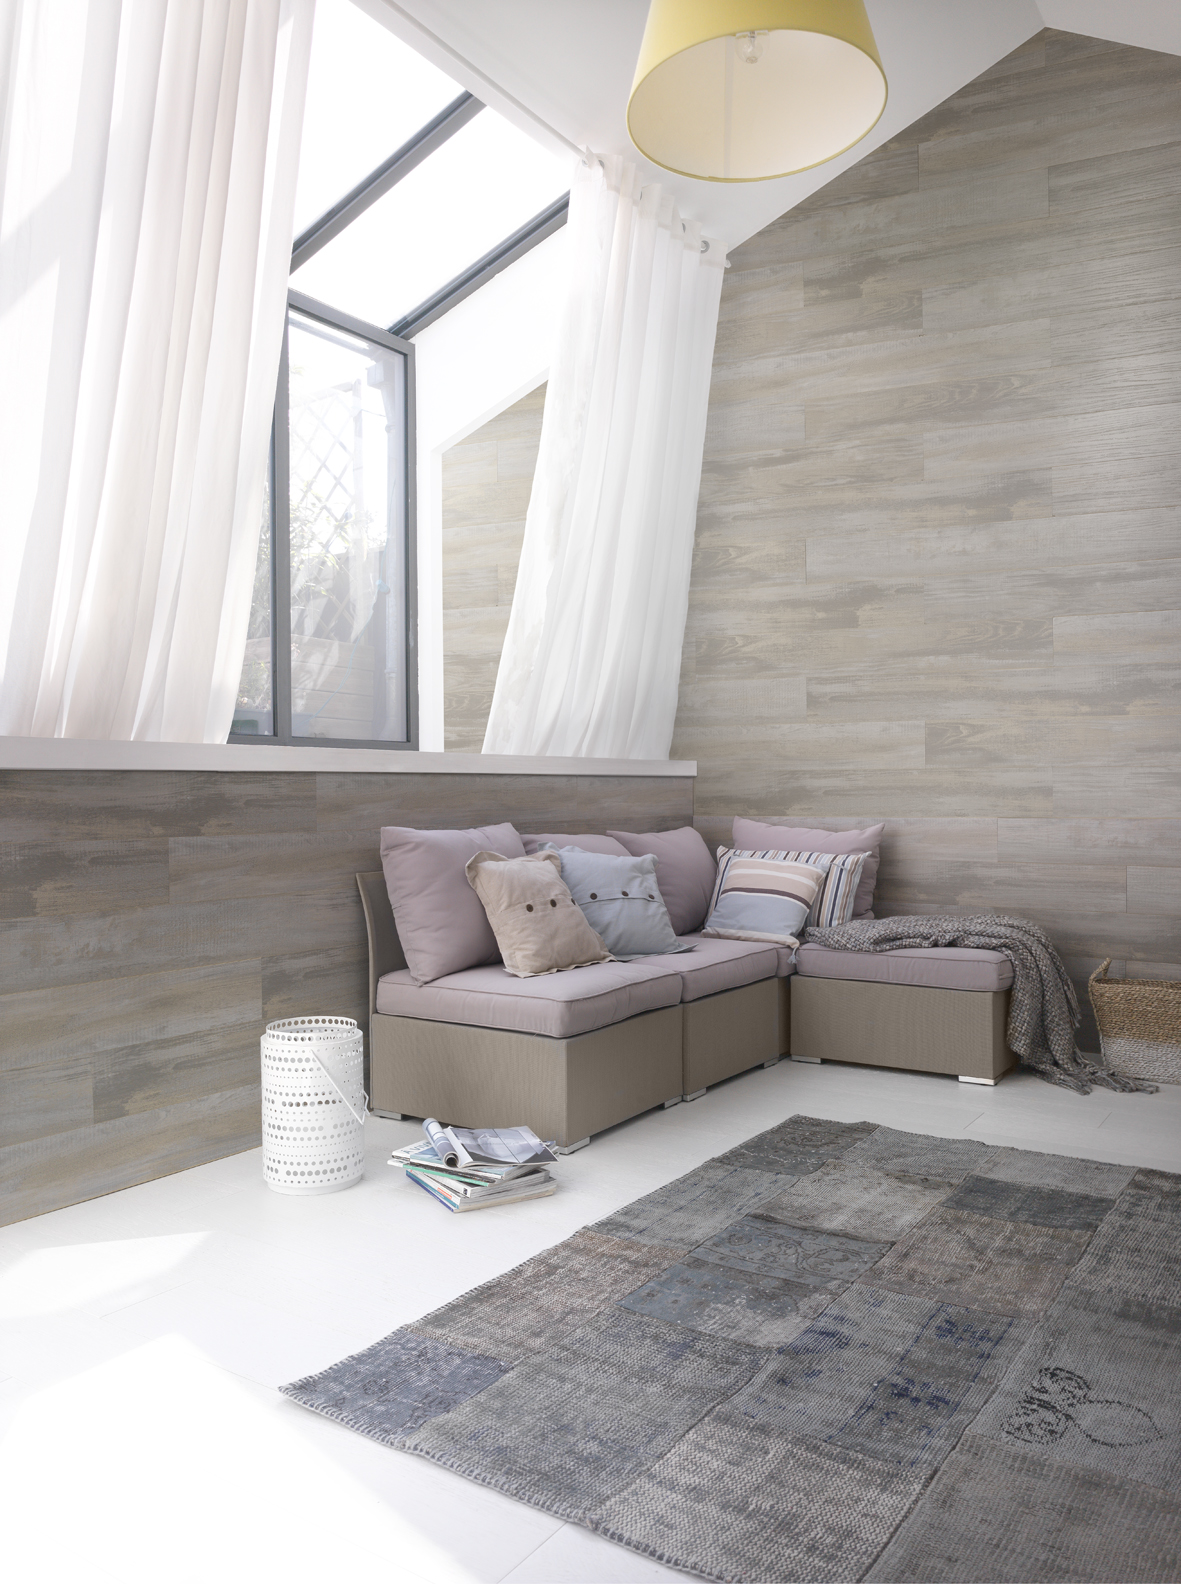 New wall covering grossfillex naturally so that mingles with wood fimma maderalia technology - Revestimiento madera paredes ...